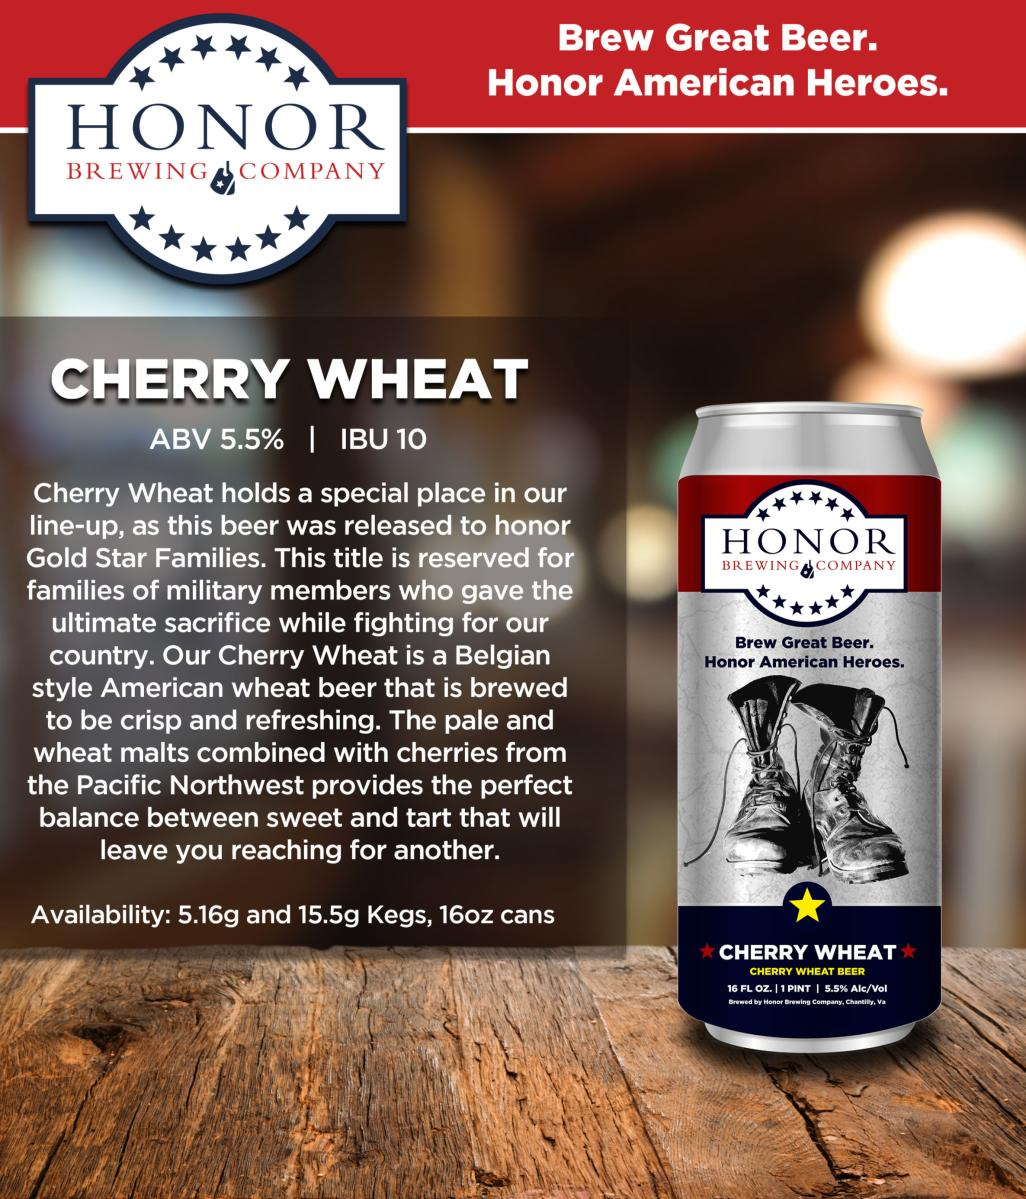 Honor Brewing Co. - Cherry Wheat